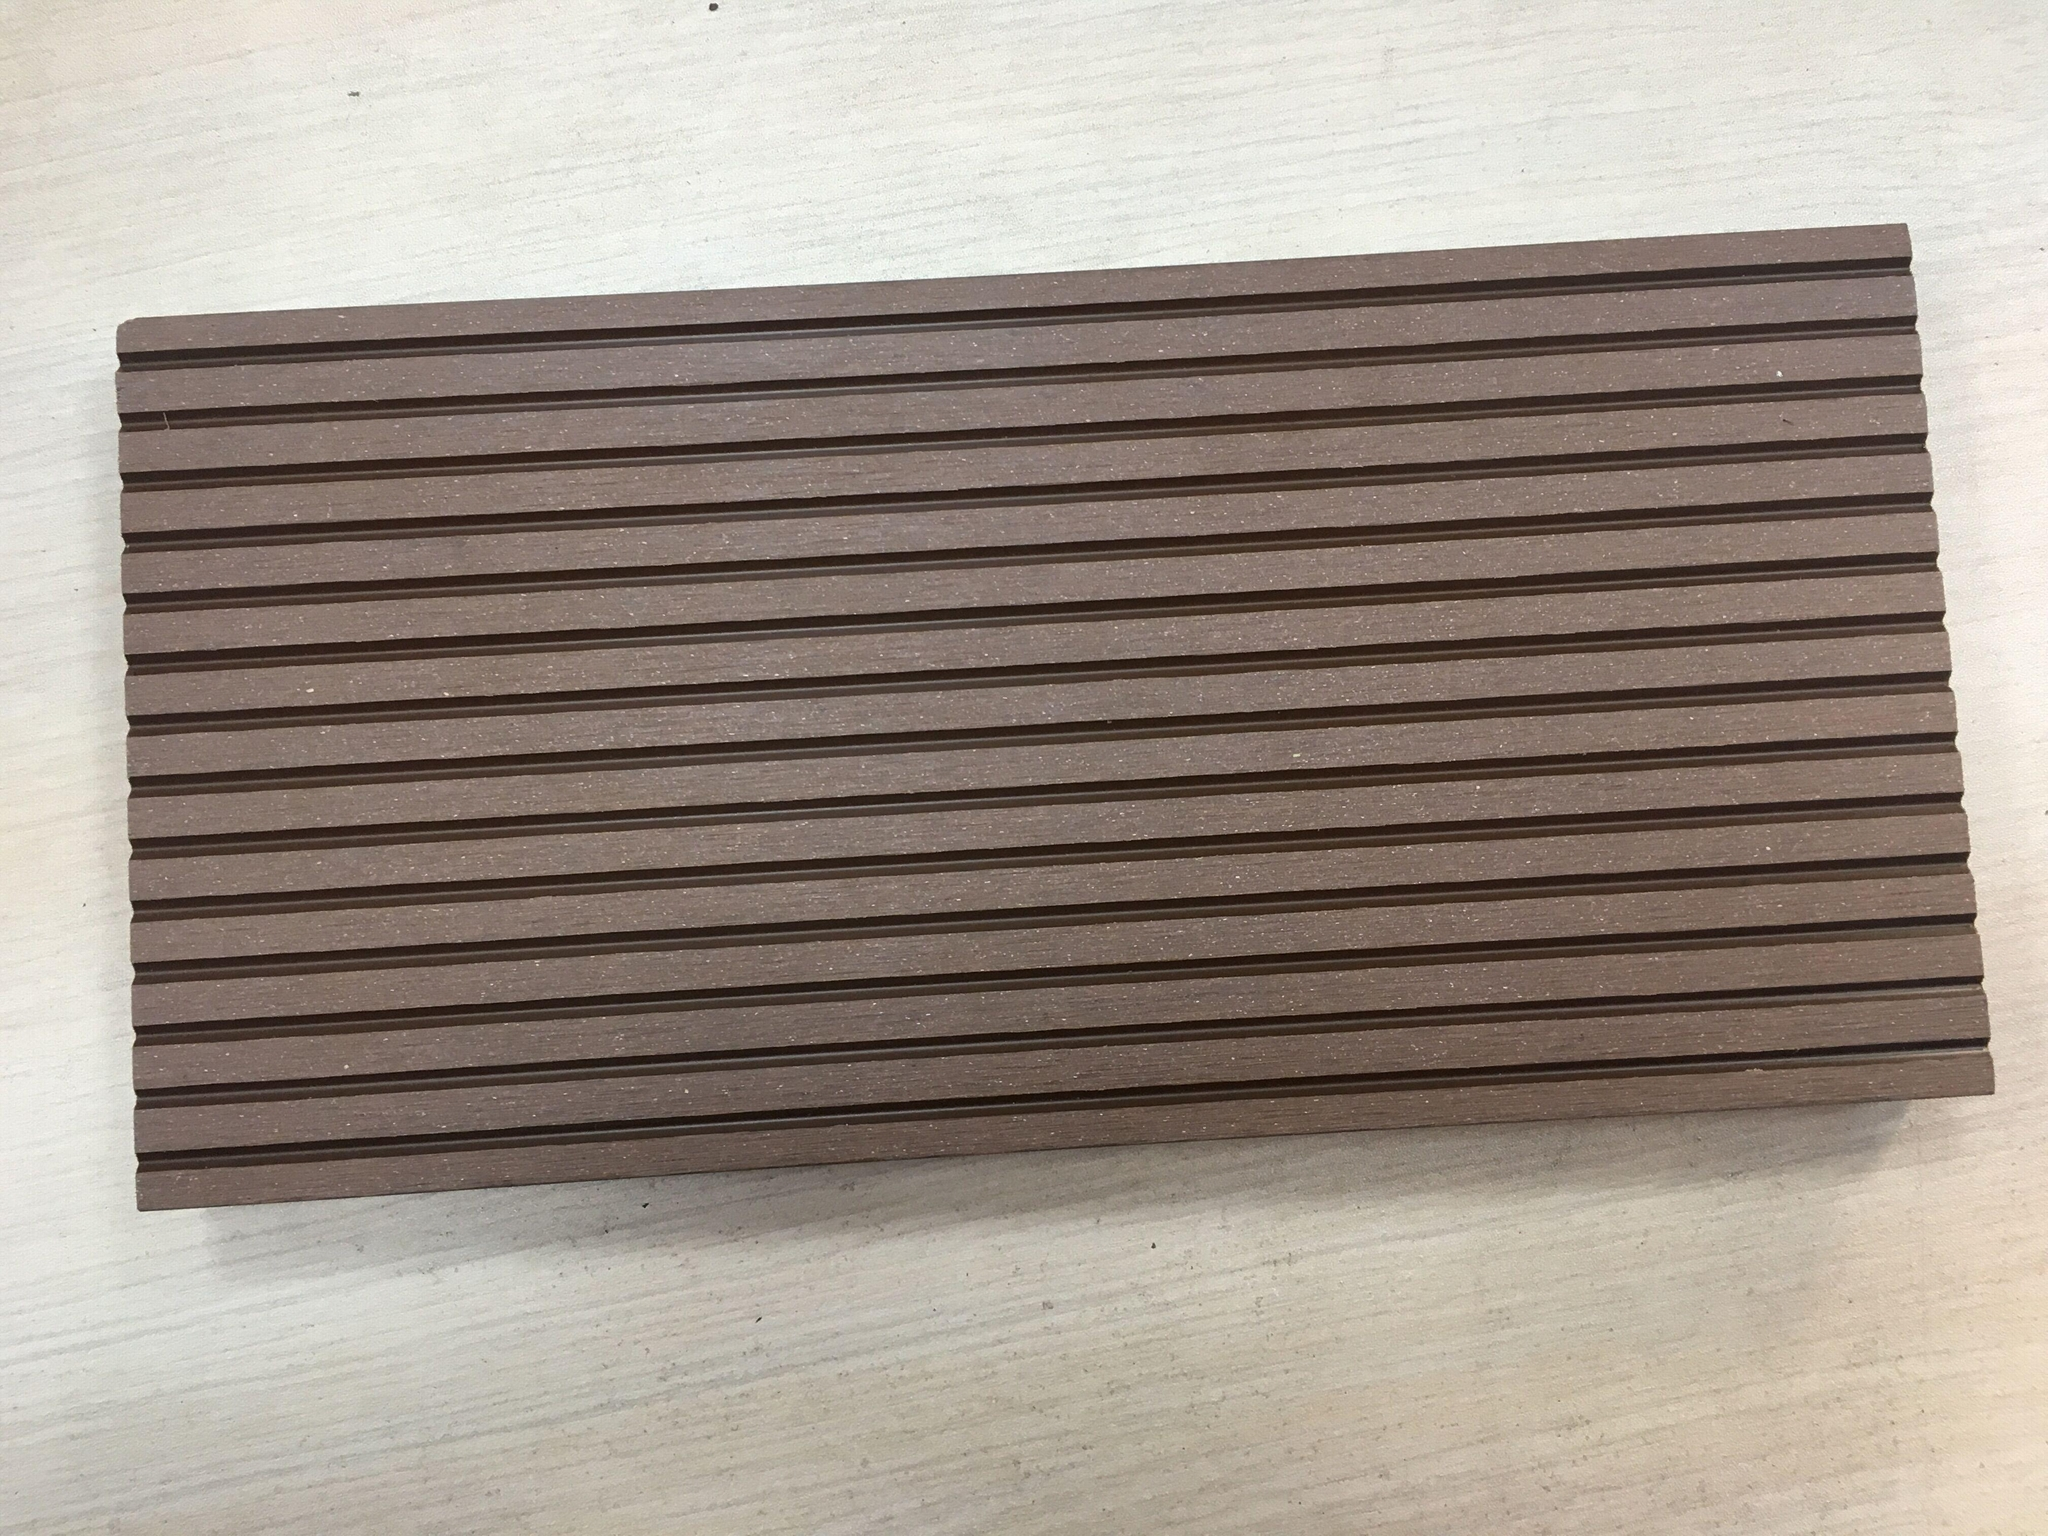 Patented, surface sanded wpc decking for outdoor 4